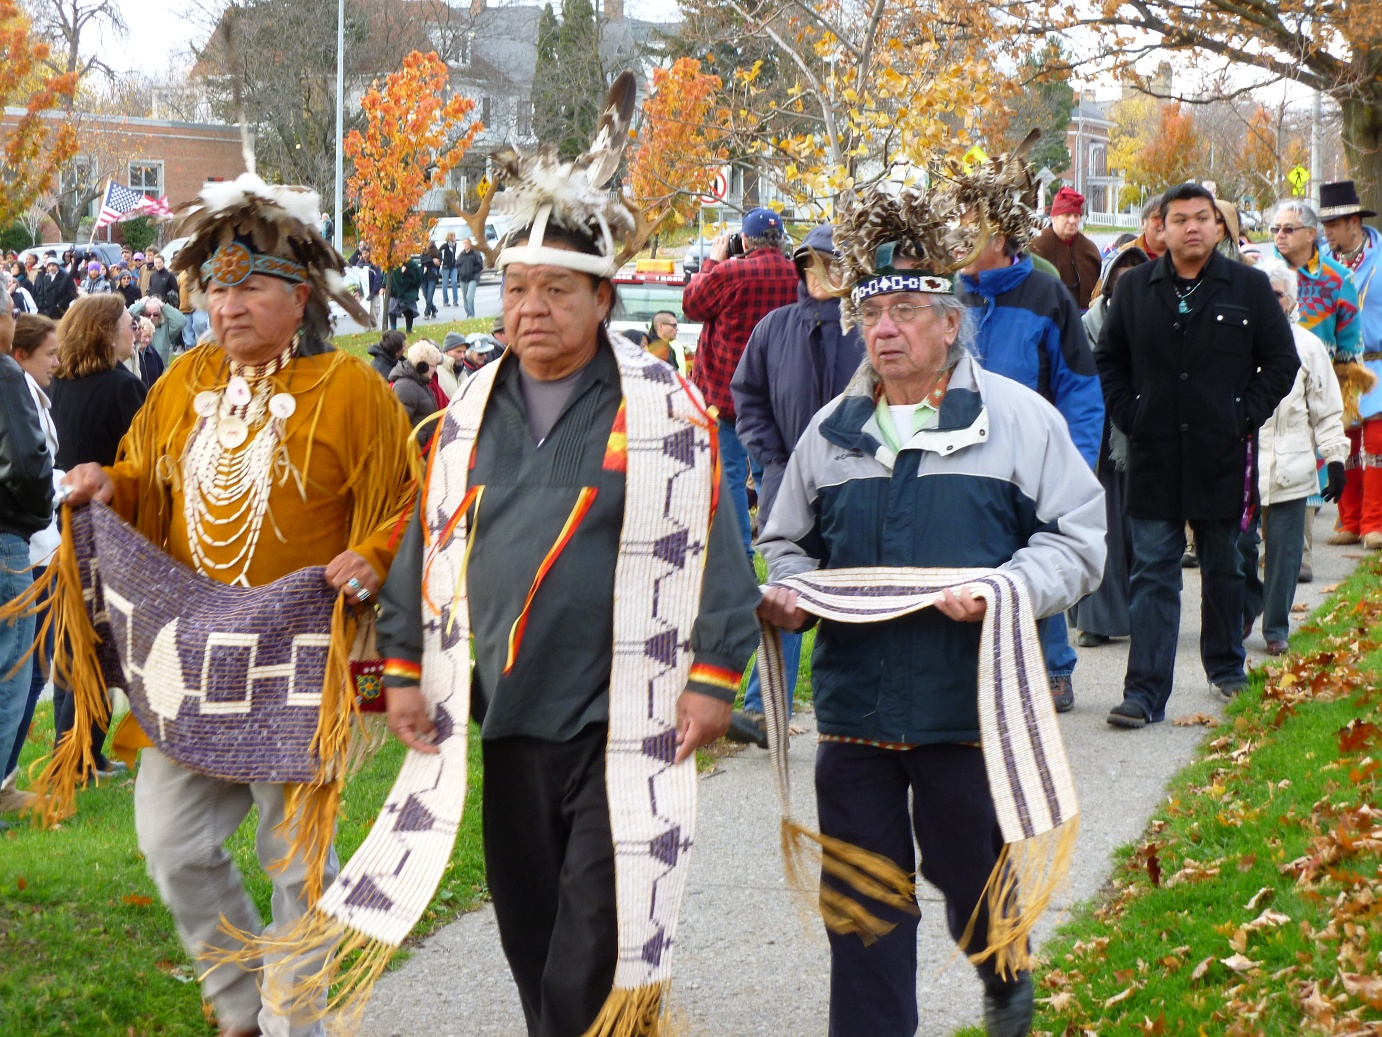 Charles Kader: Haudenosaunee territory will always be Indian land